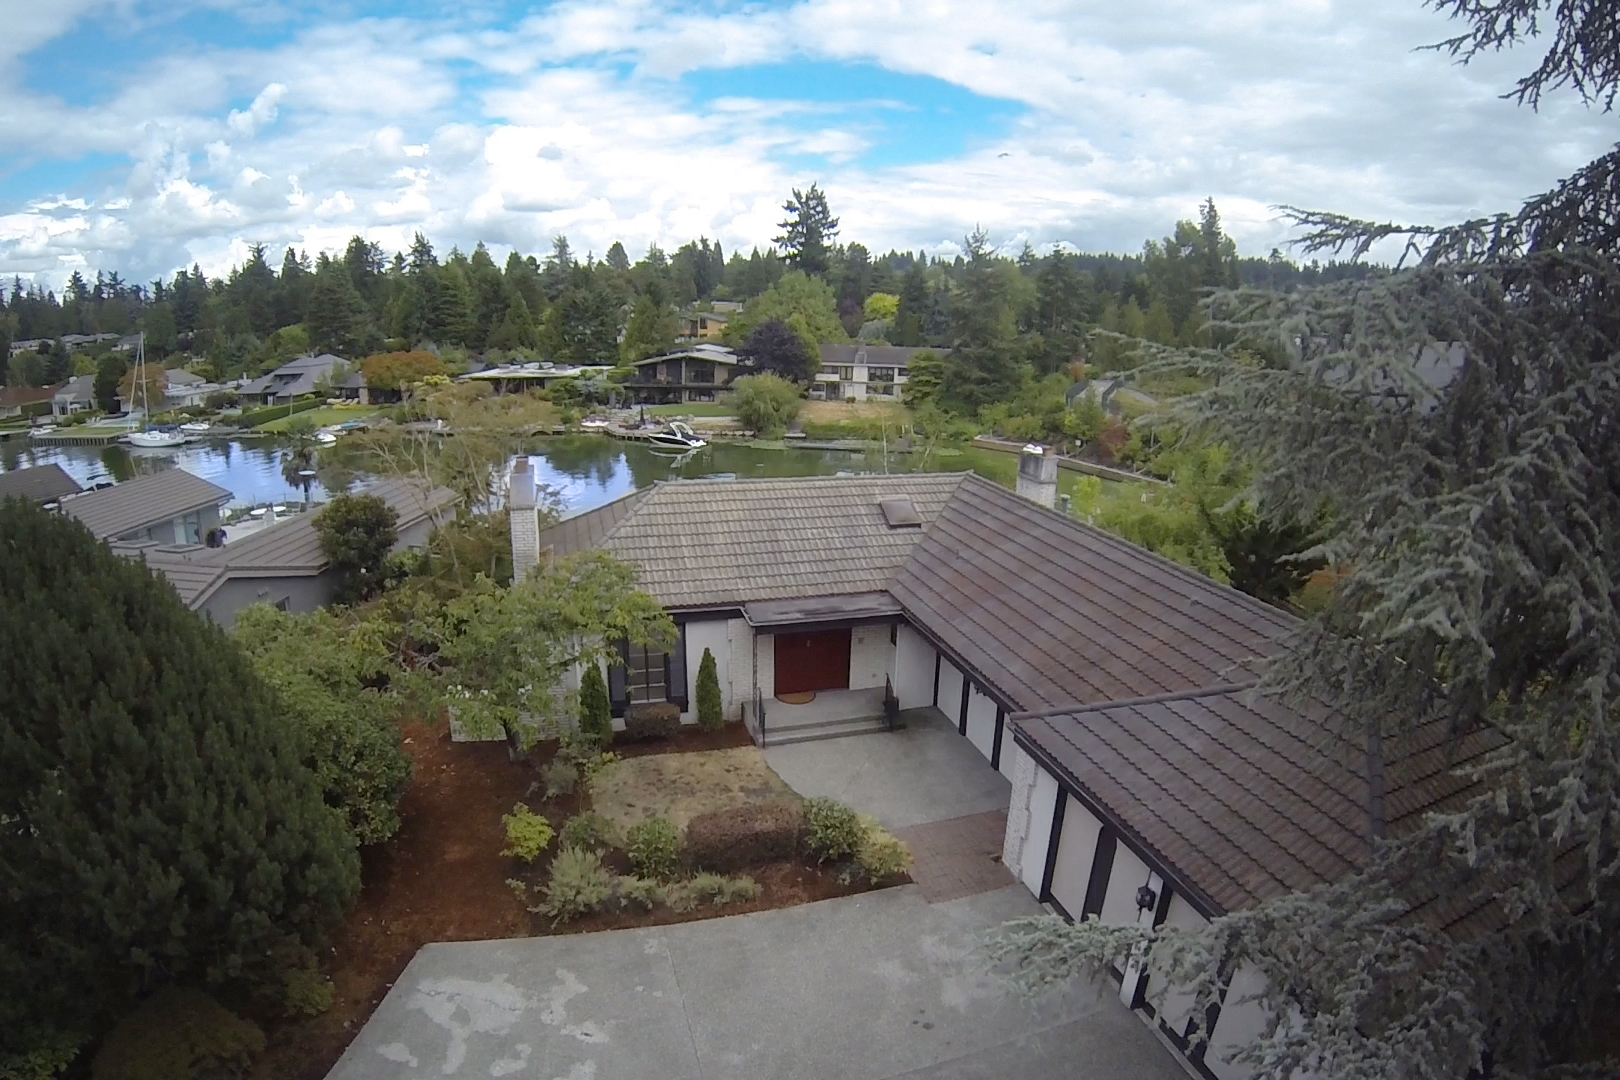 Single Family Home for Sale at Tranquil waterfront living 3008 80th Ave NE Hunts Point, Washington 98004 United States